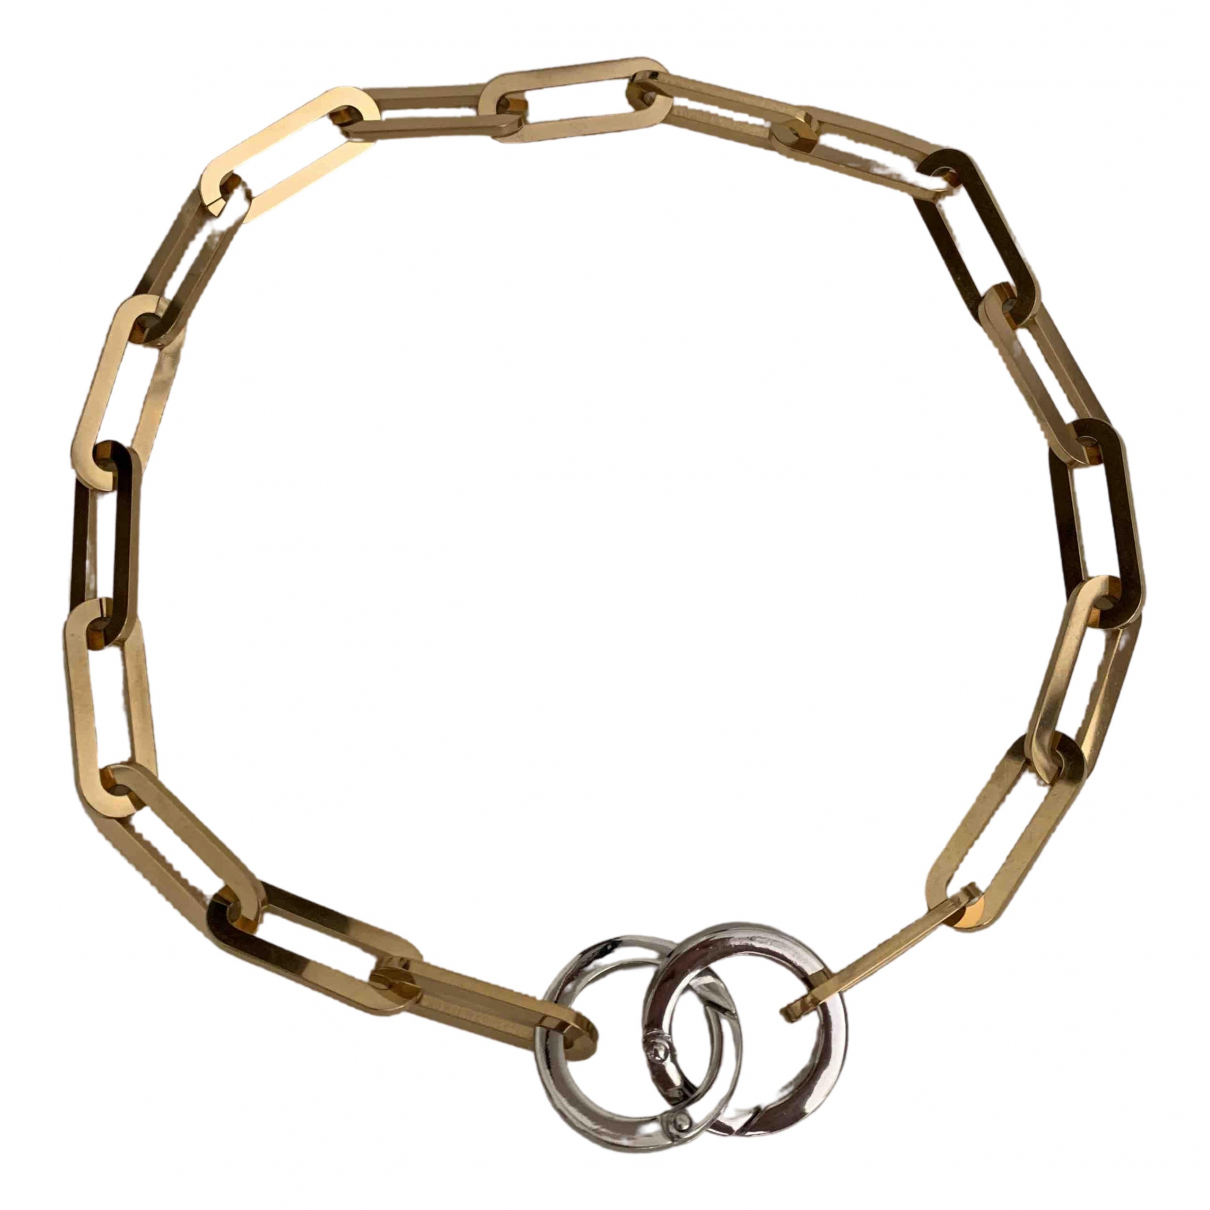 Non Signe / Unsigned  Maille Americaine Kette in  Gold Stahl